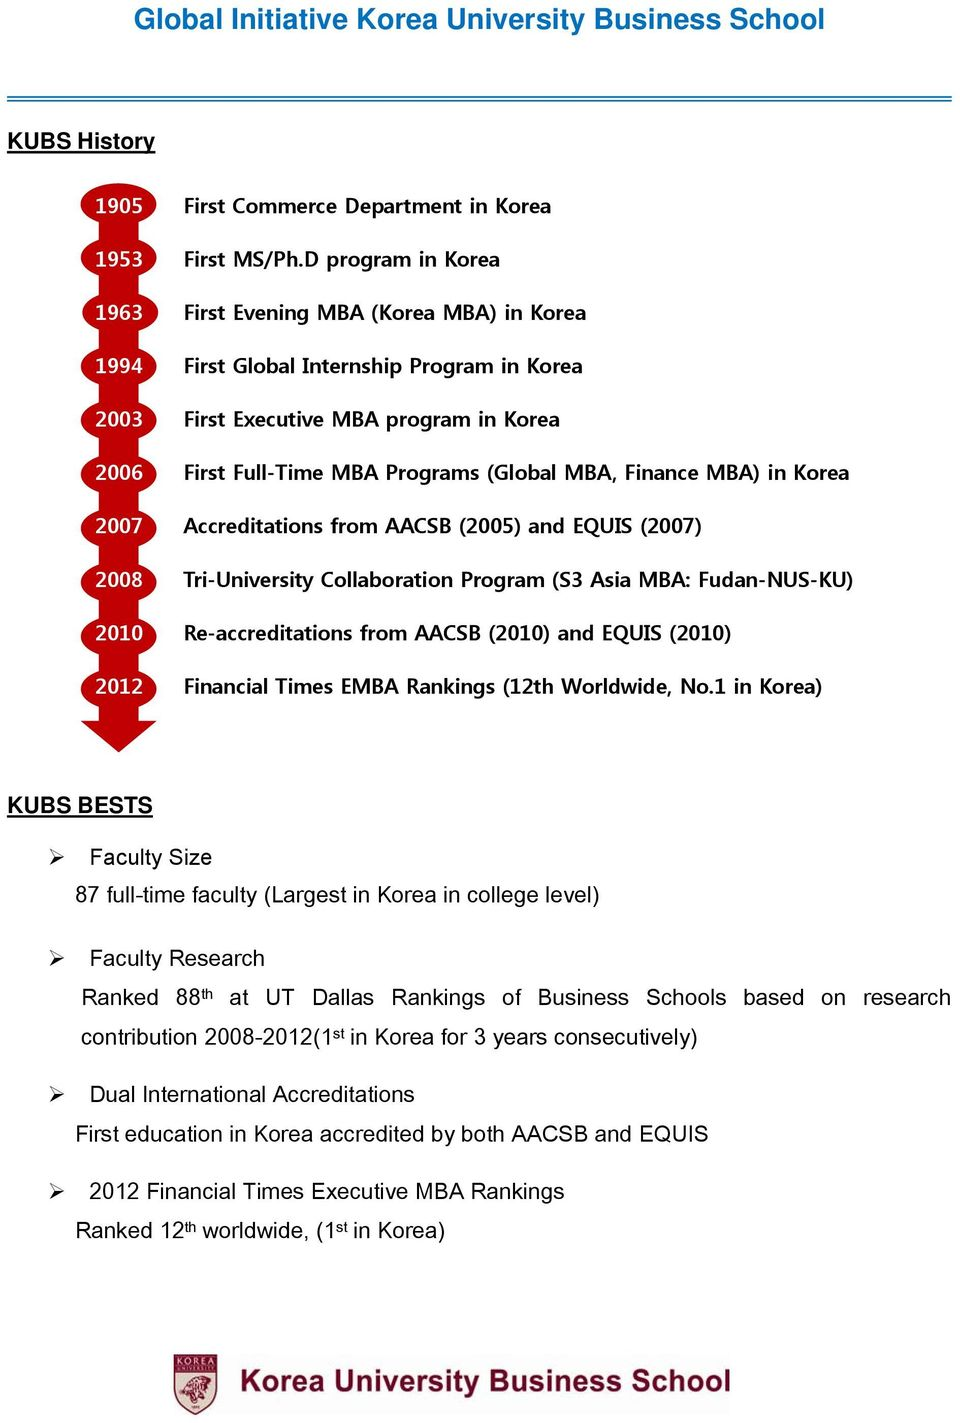 2007 Accreditations from AACSB (2005) and EQUIS (2007) 2008 Tri-University Collaboration Program (S3 Asia : Fudan-NUS-KU) 2010 Re-accreditations from AACSB (2010) and EQUIS (2010) 2012 Financial